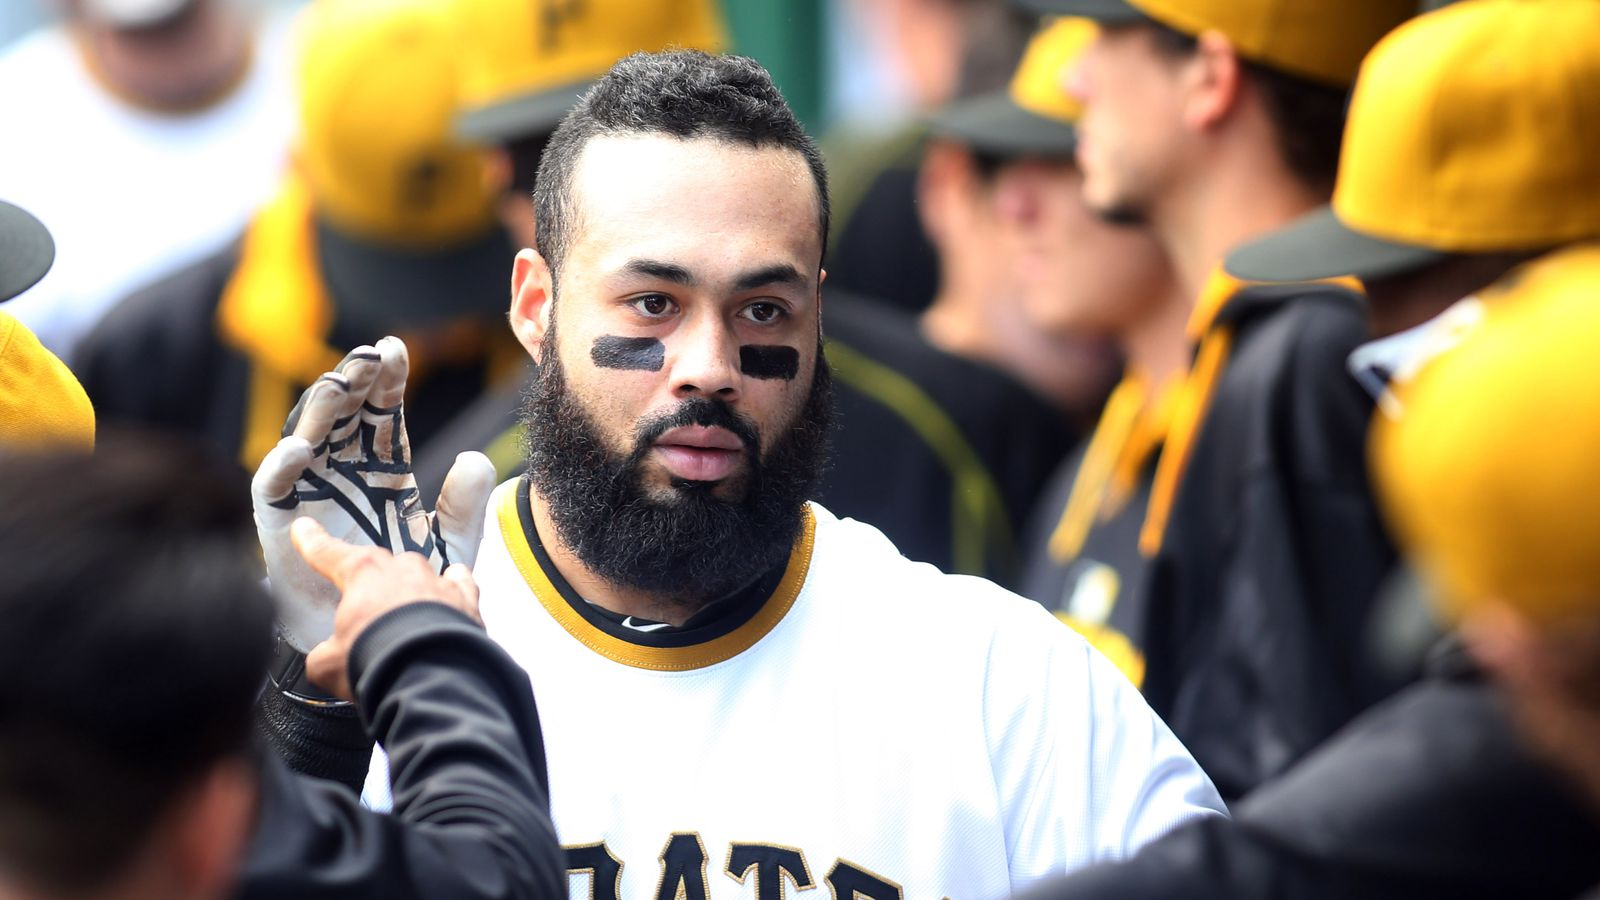 Ask BD: Pedro Alvarez's legacy with the Pirates